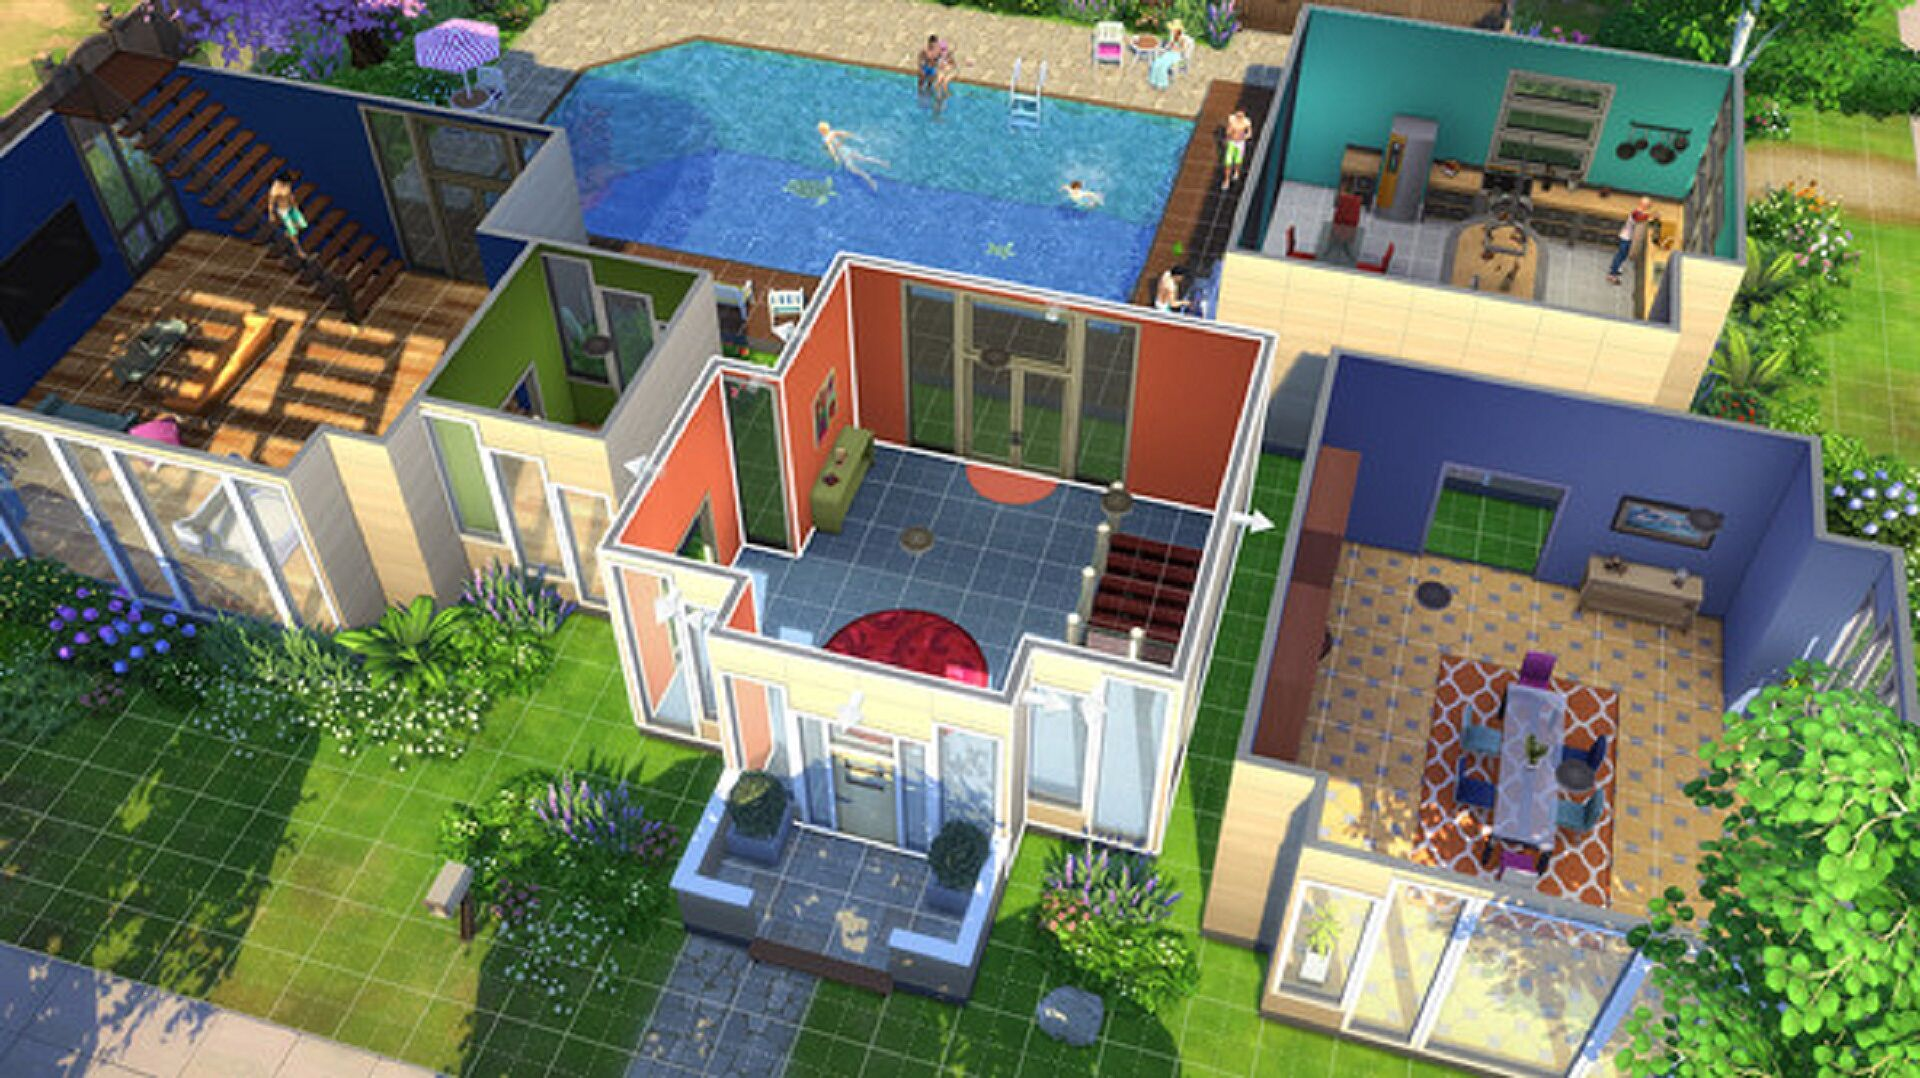 Relationships sims modify 4 cheat 'Sims 4: